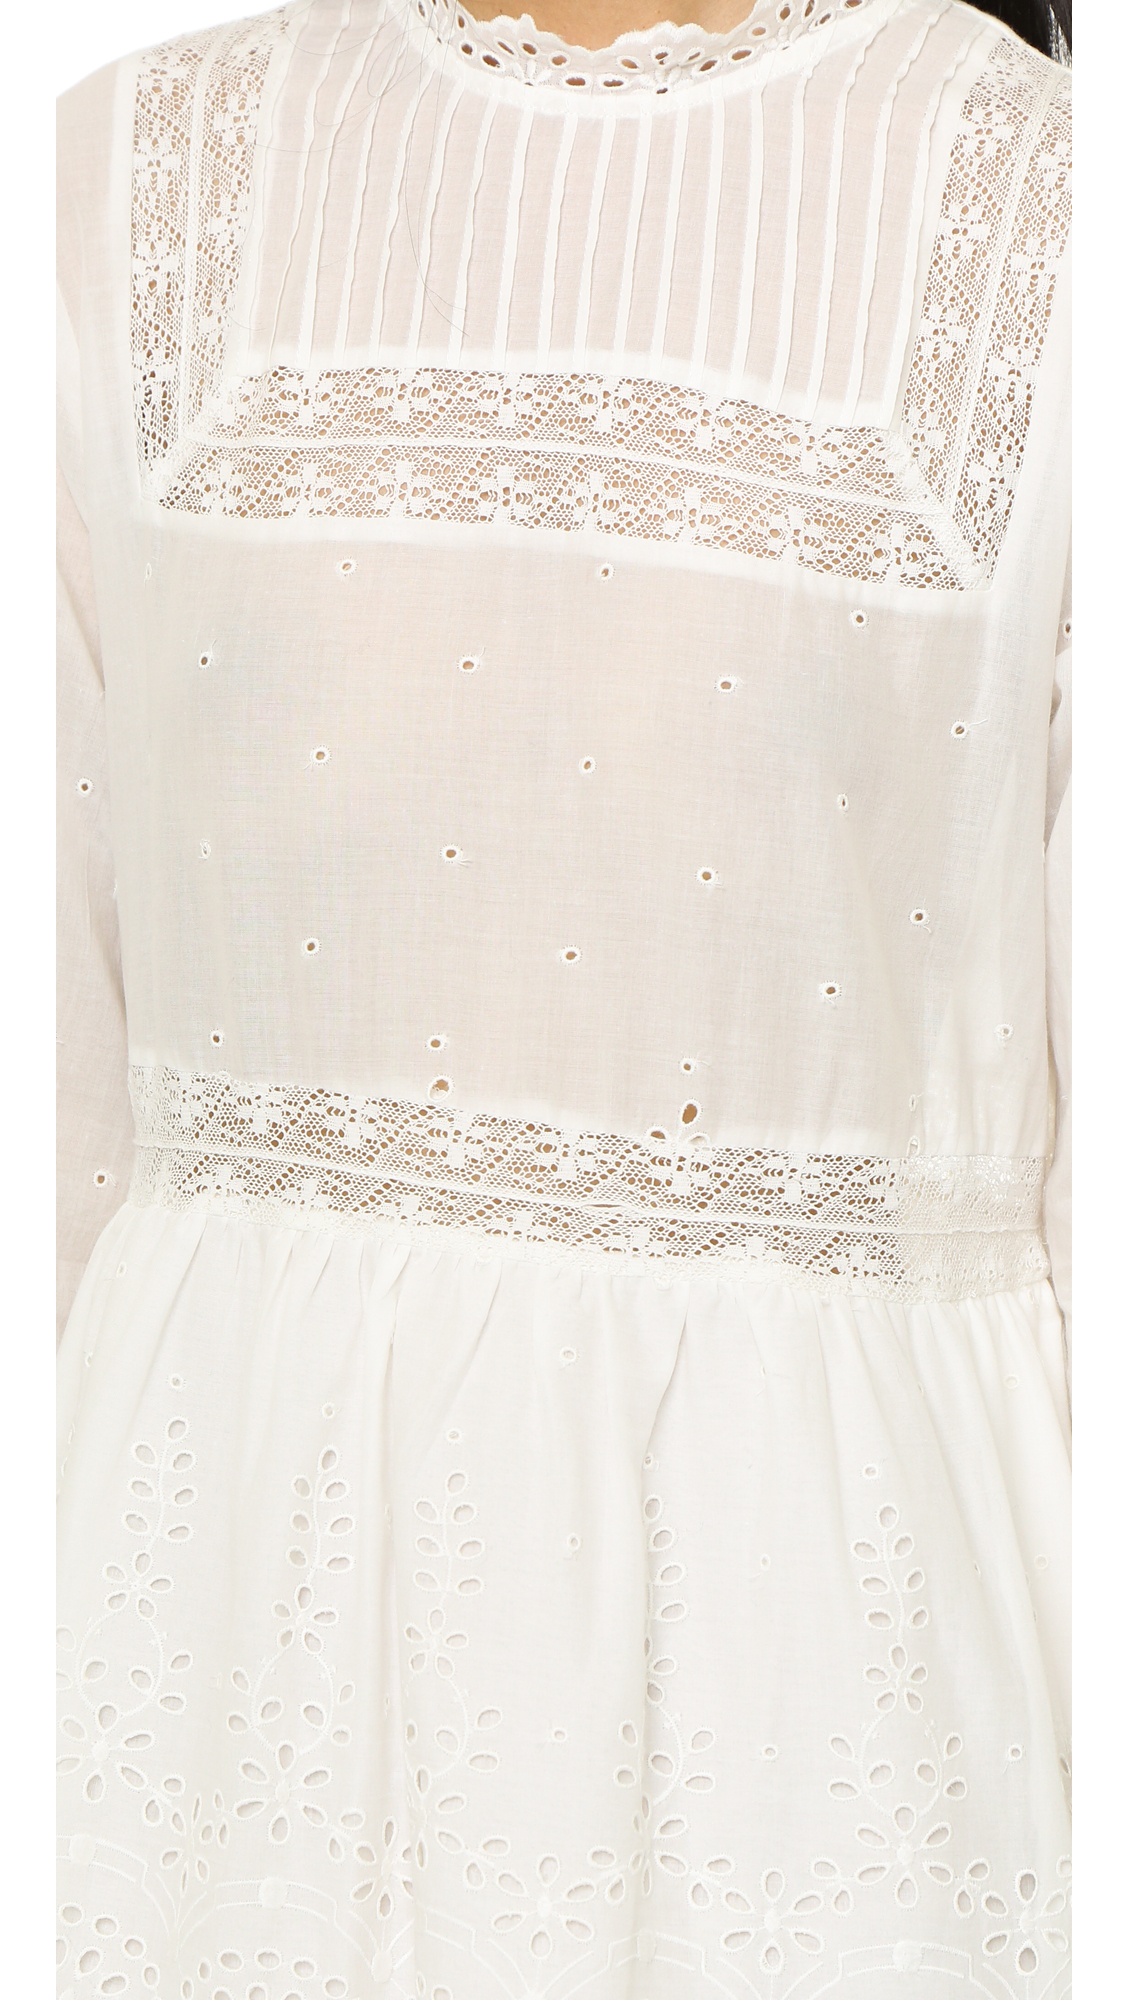 736c0f42846b Lyst - Sea Eyelet Lace Combo Dress - Navy in White